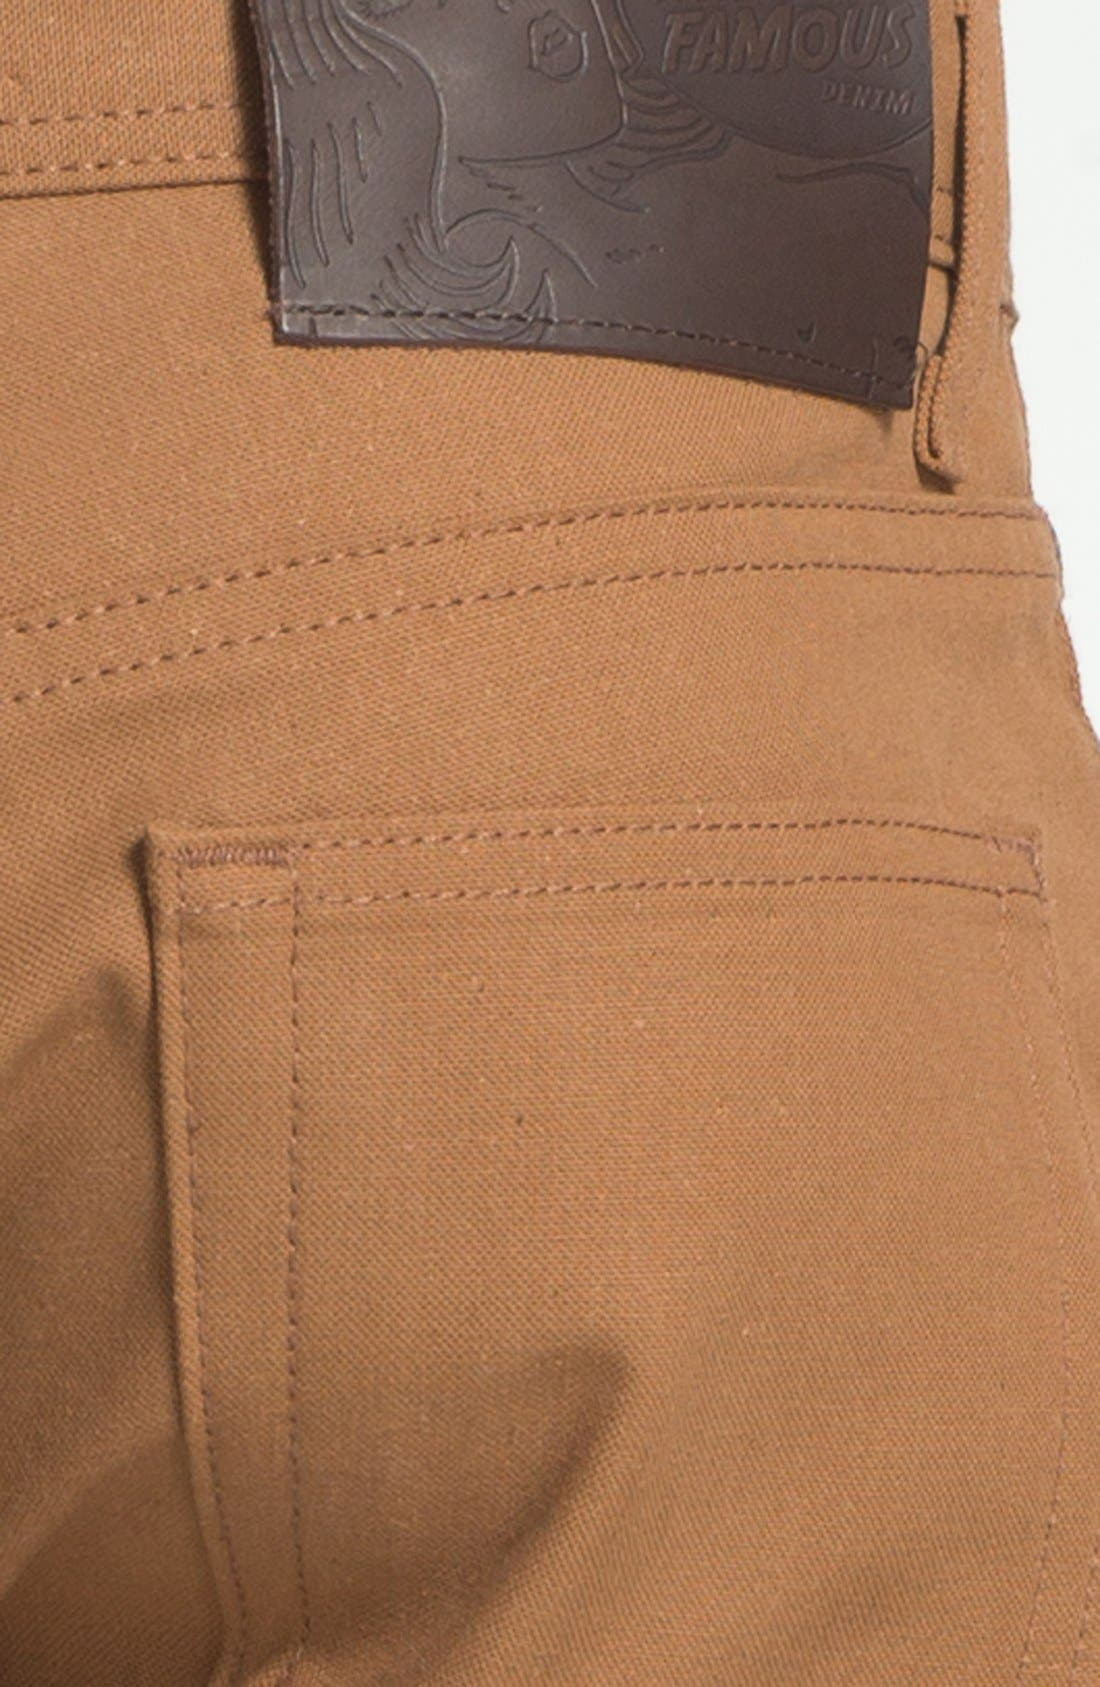 Weird Guy Slim Selvedge Duck Canvas Jeans,                             Alternate thumbnail 4, color,                             VINTAGE BROWN KHAKI